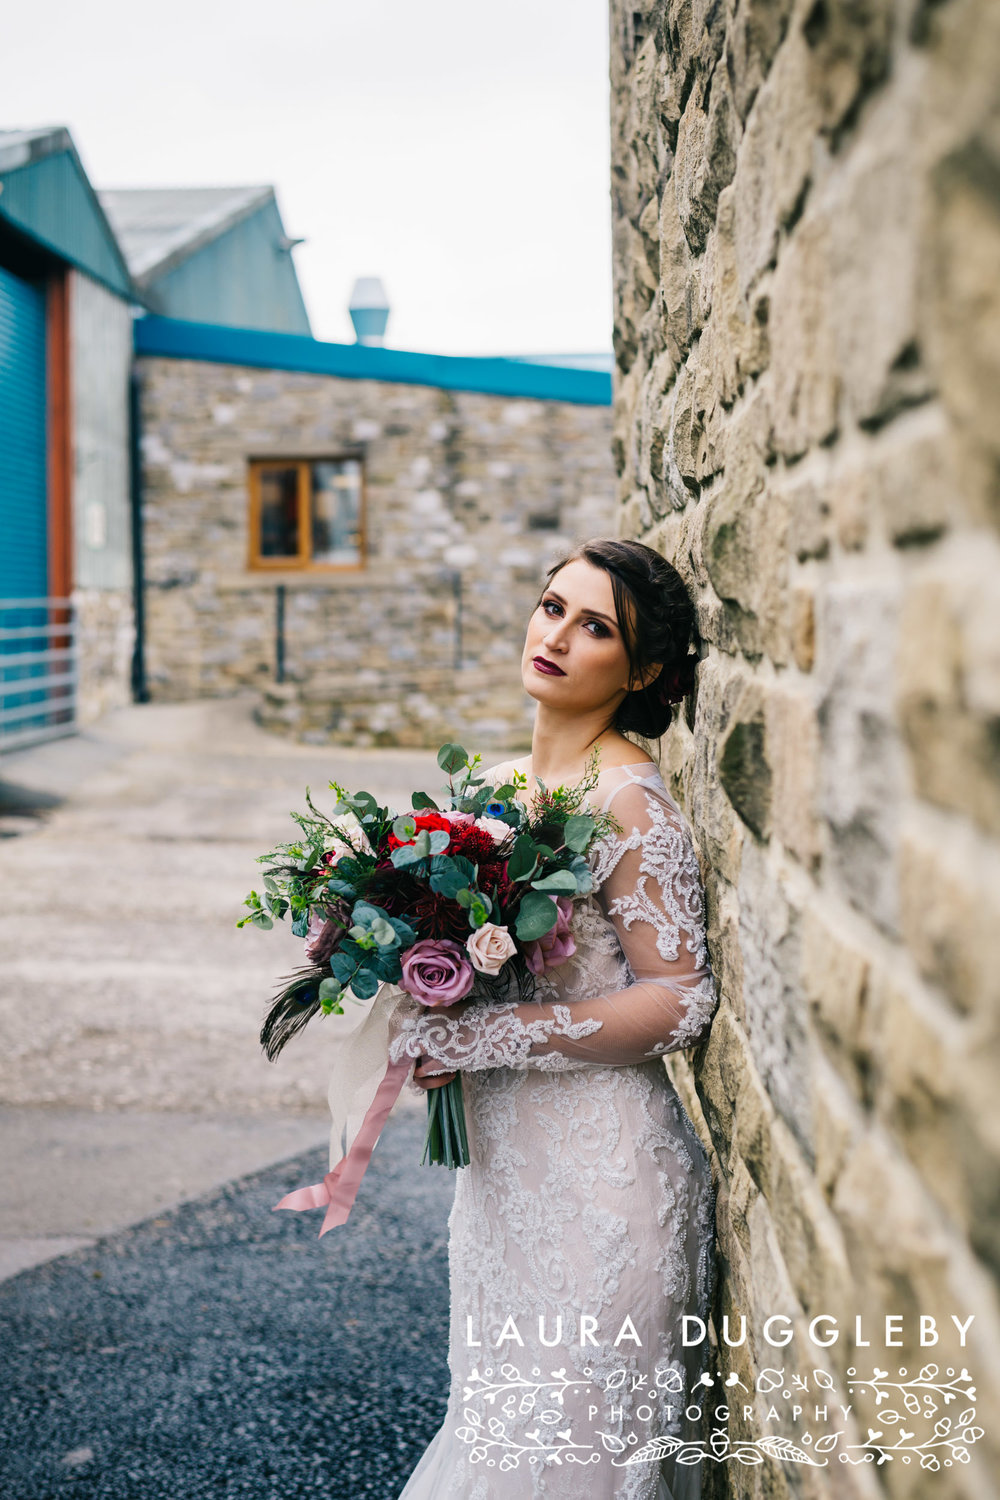 Skipton Wedding Photographer - Thornton Hall Country Park Wedding Photographer14